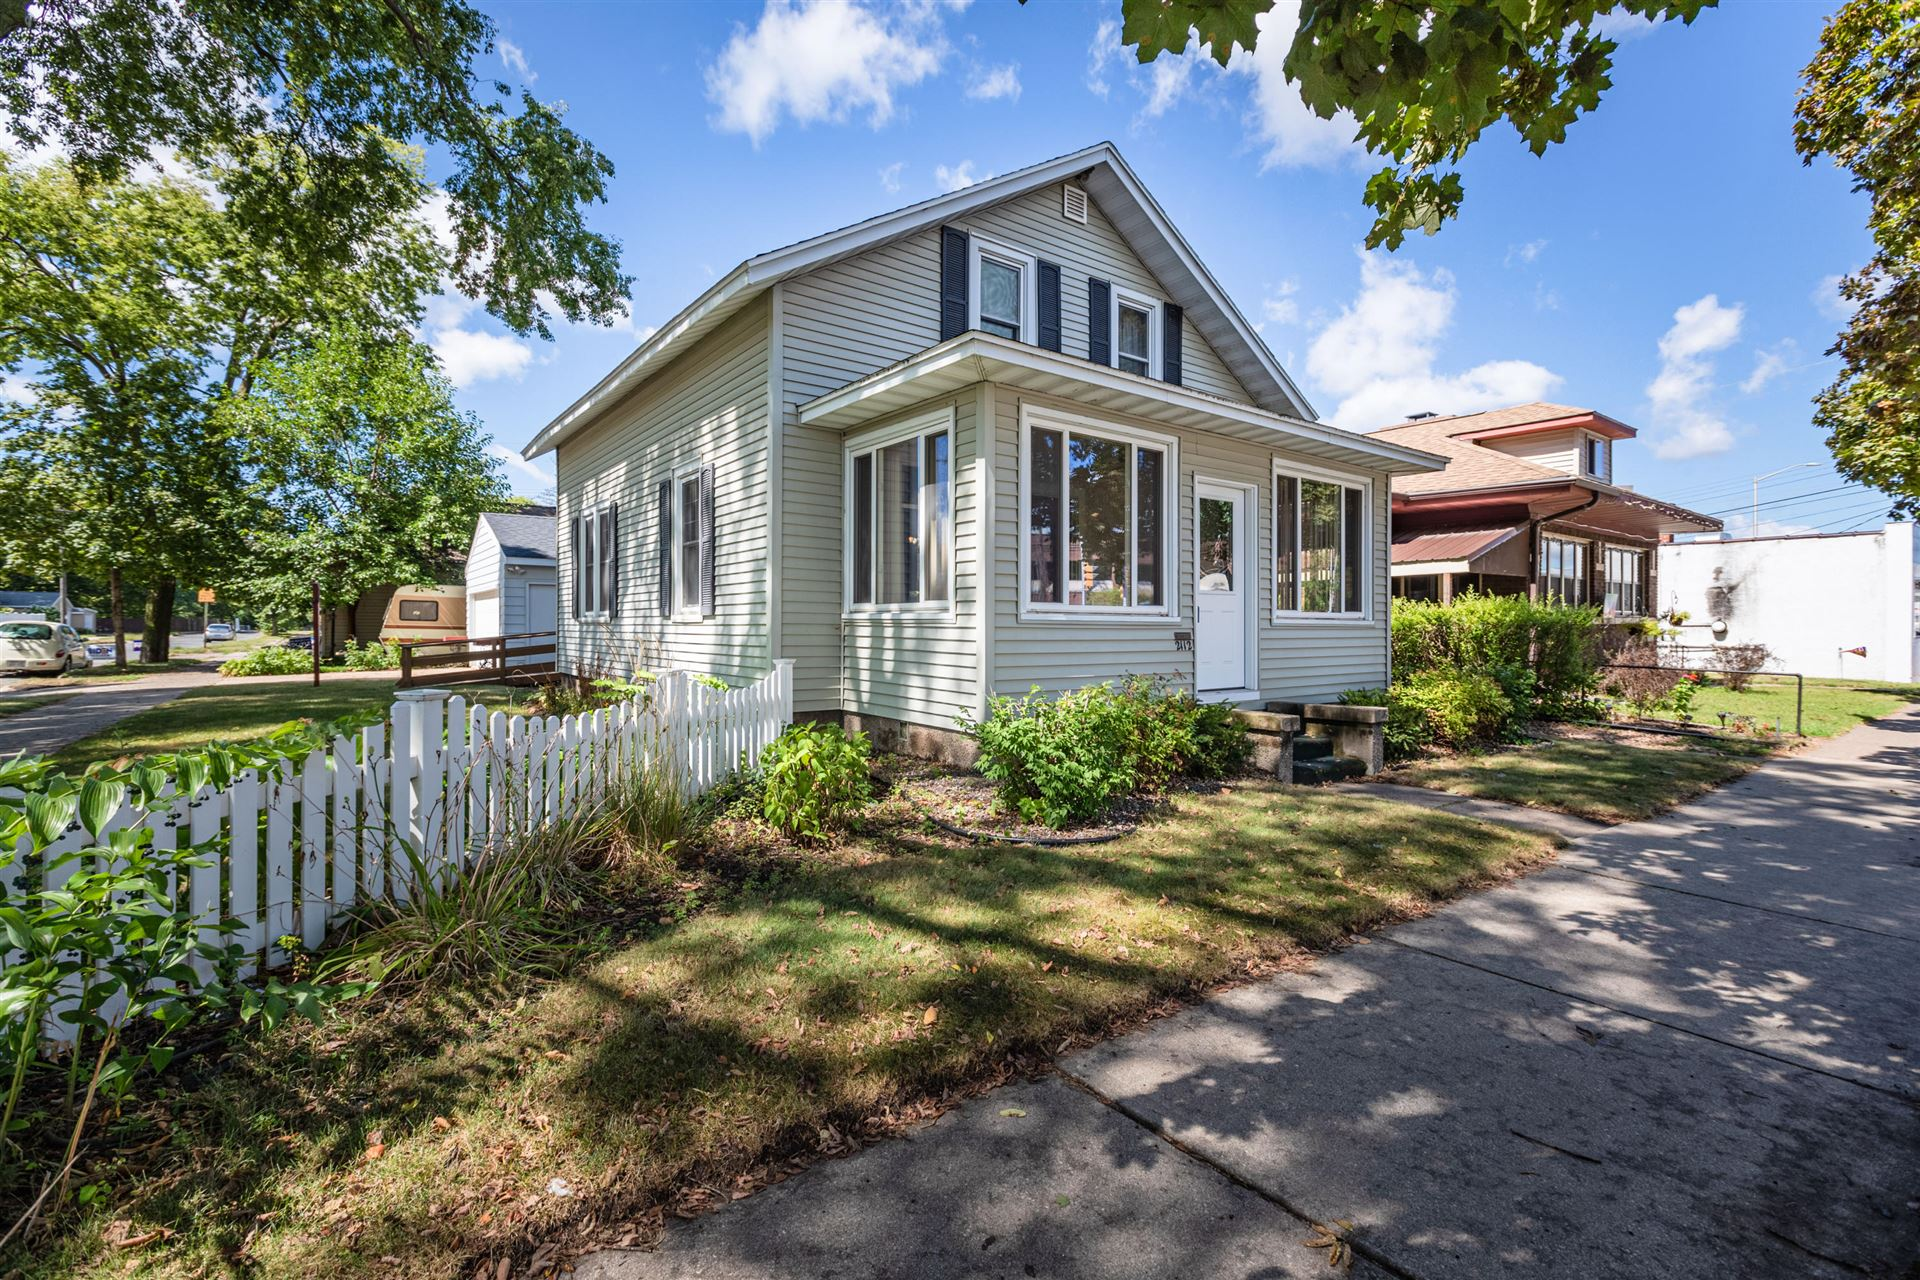 2112 West Ave S, La Crosse, WI 54601 - MLS#: 1707442